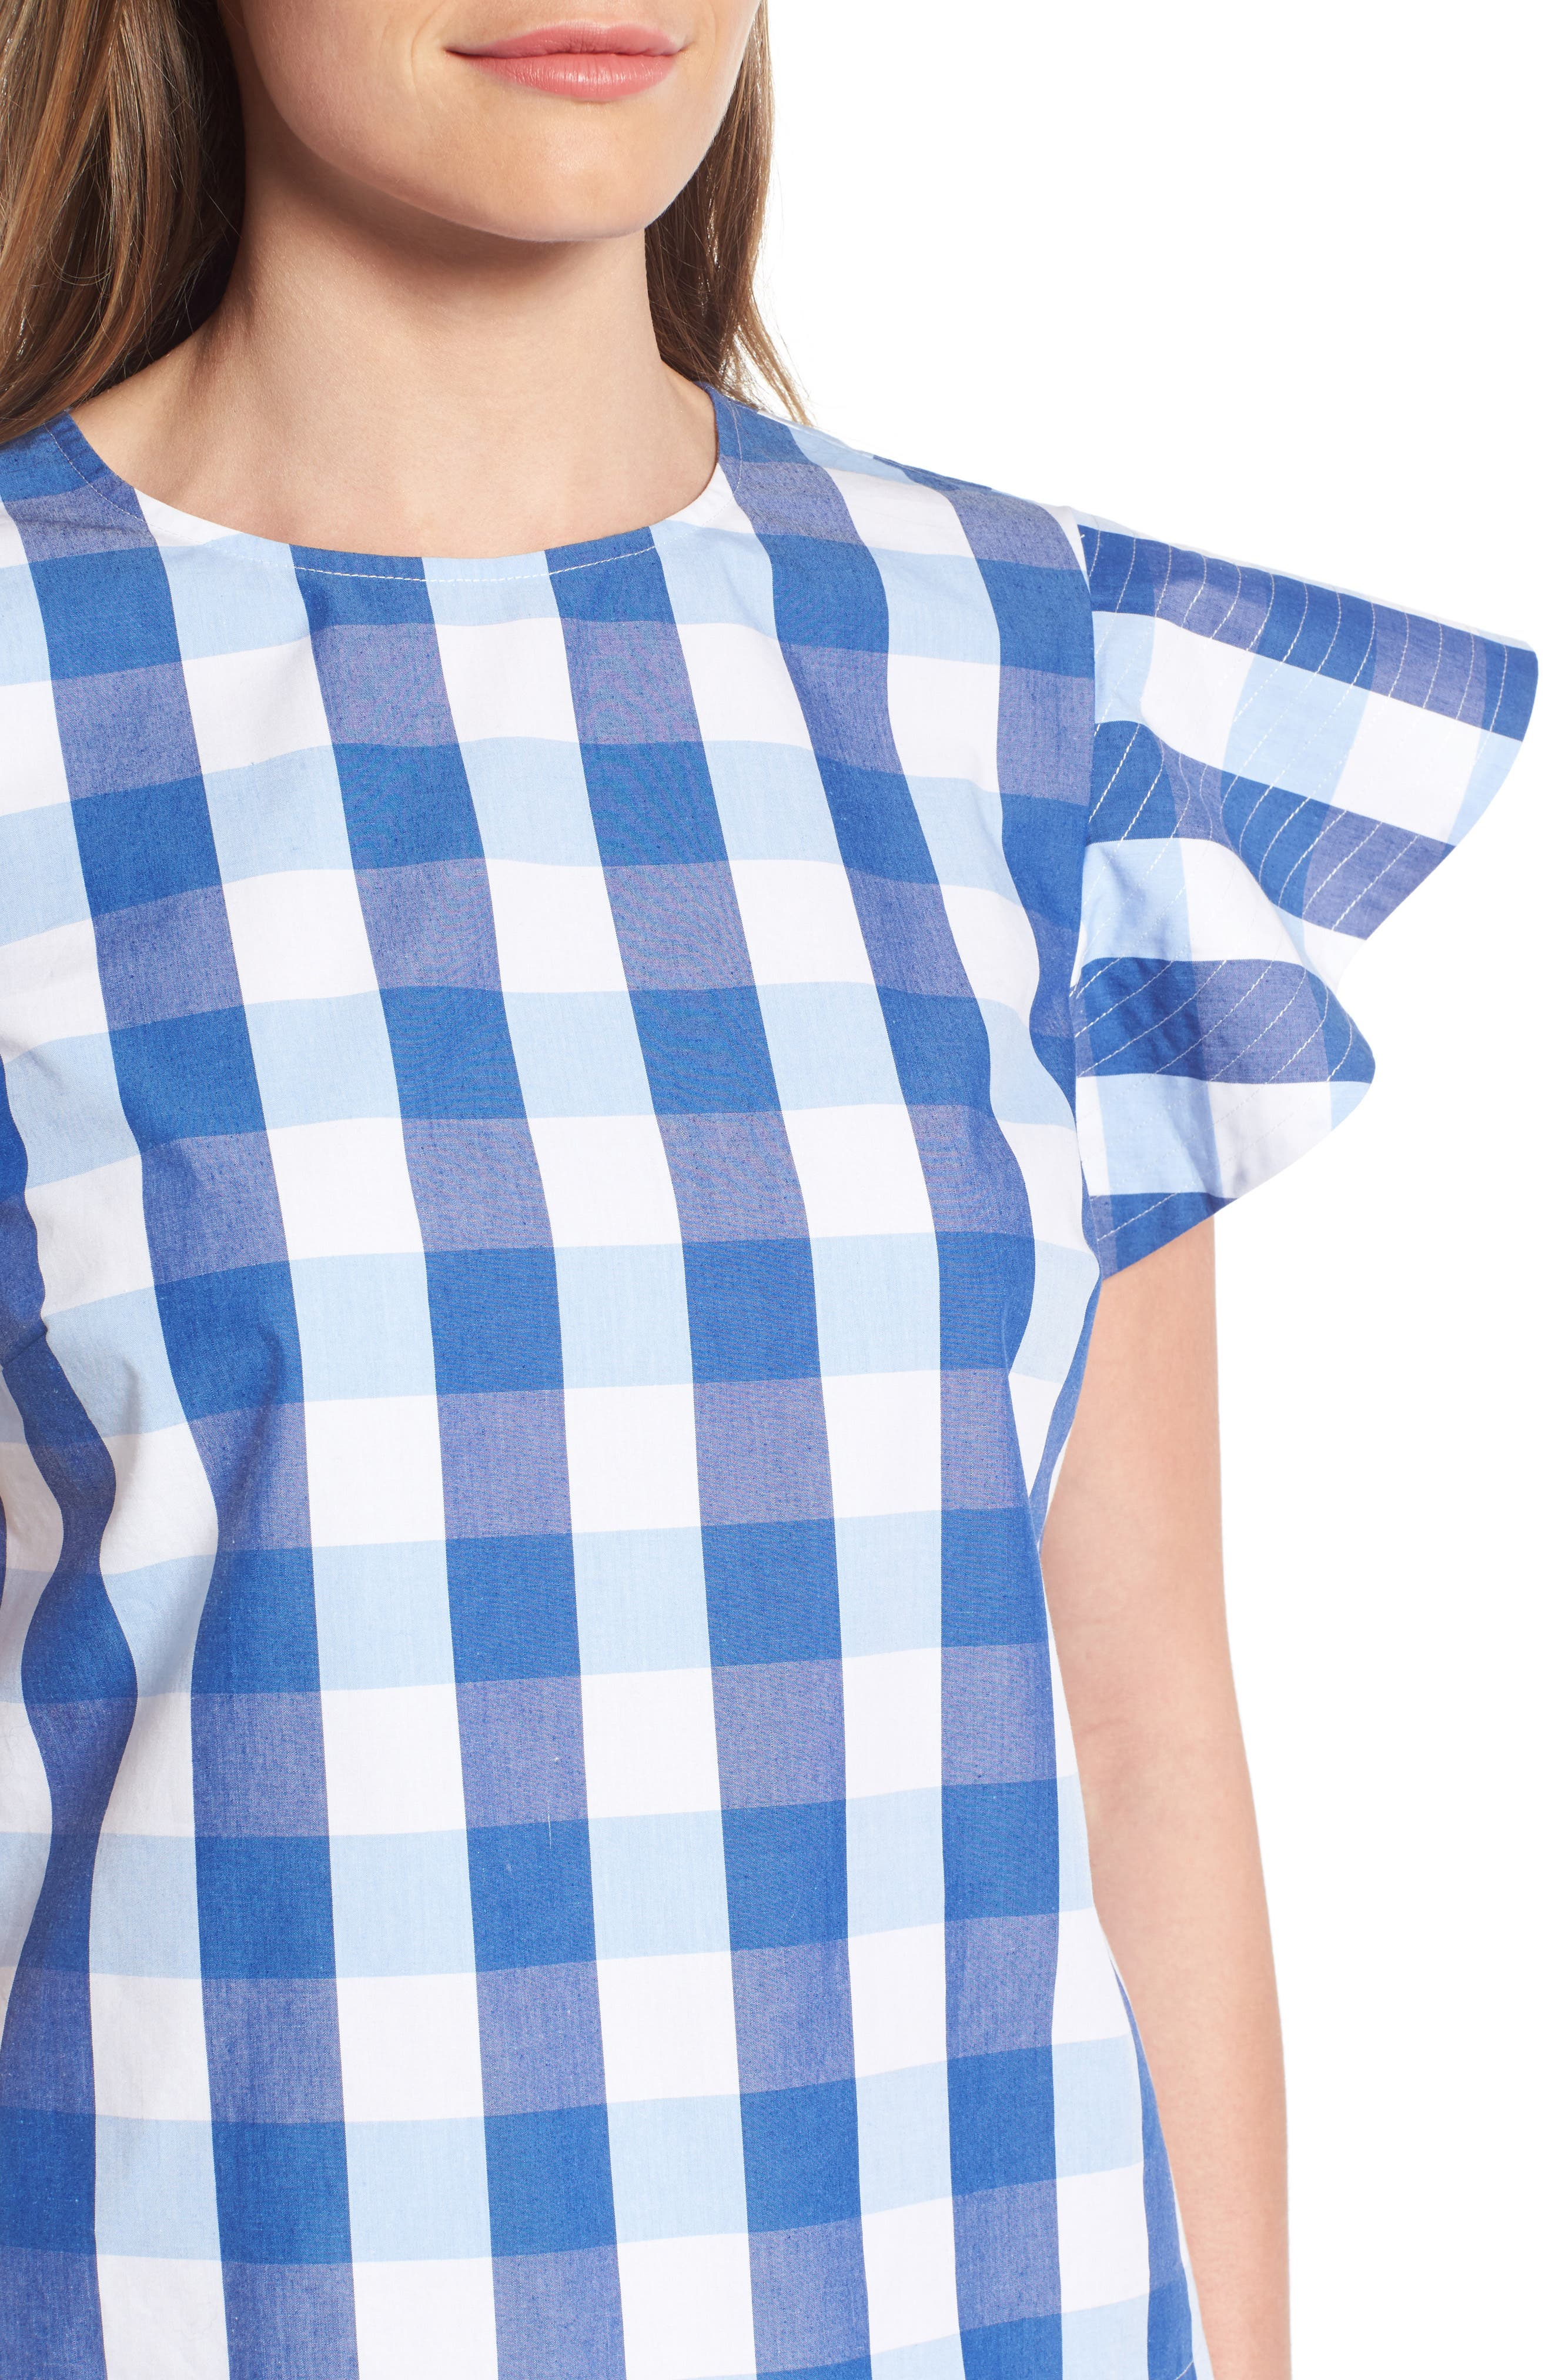 Cloister Gingham Cotton Top,                             Alternate thumbnail 7, color,